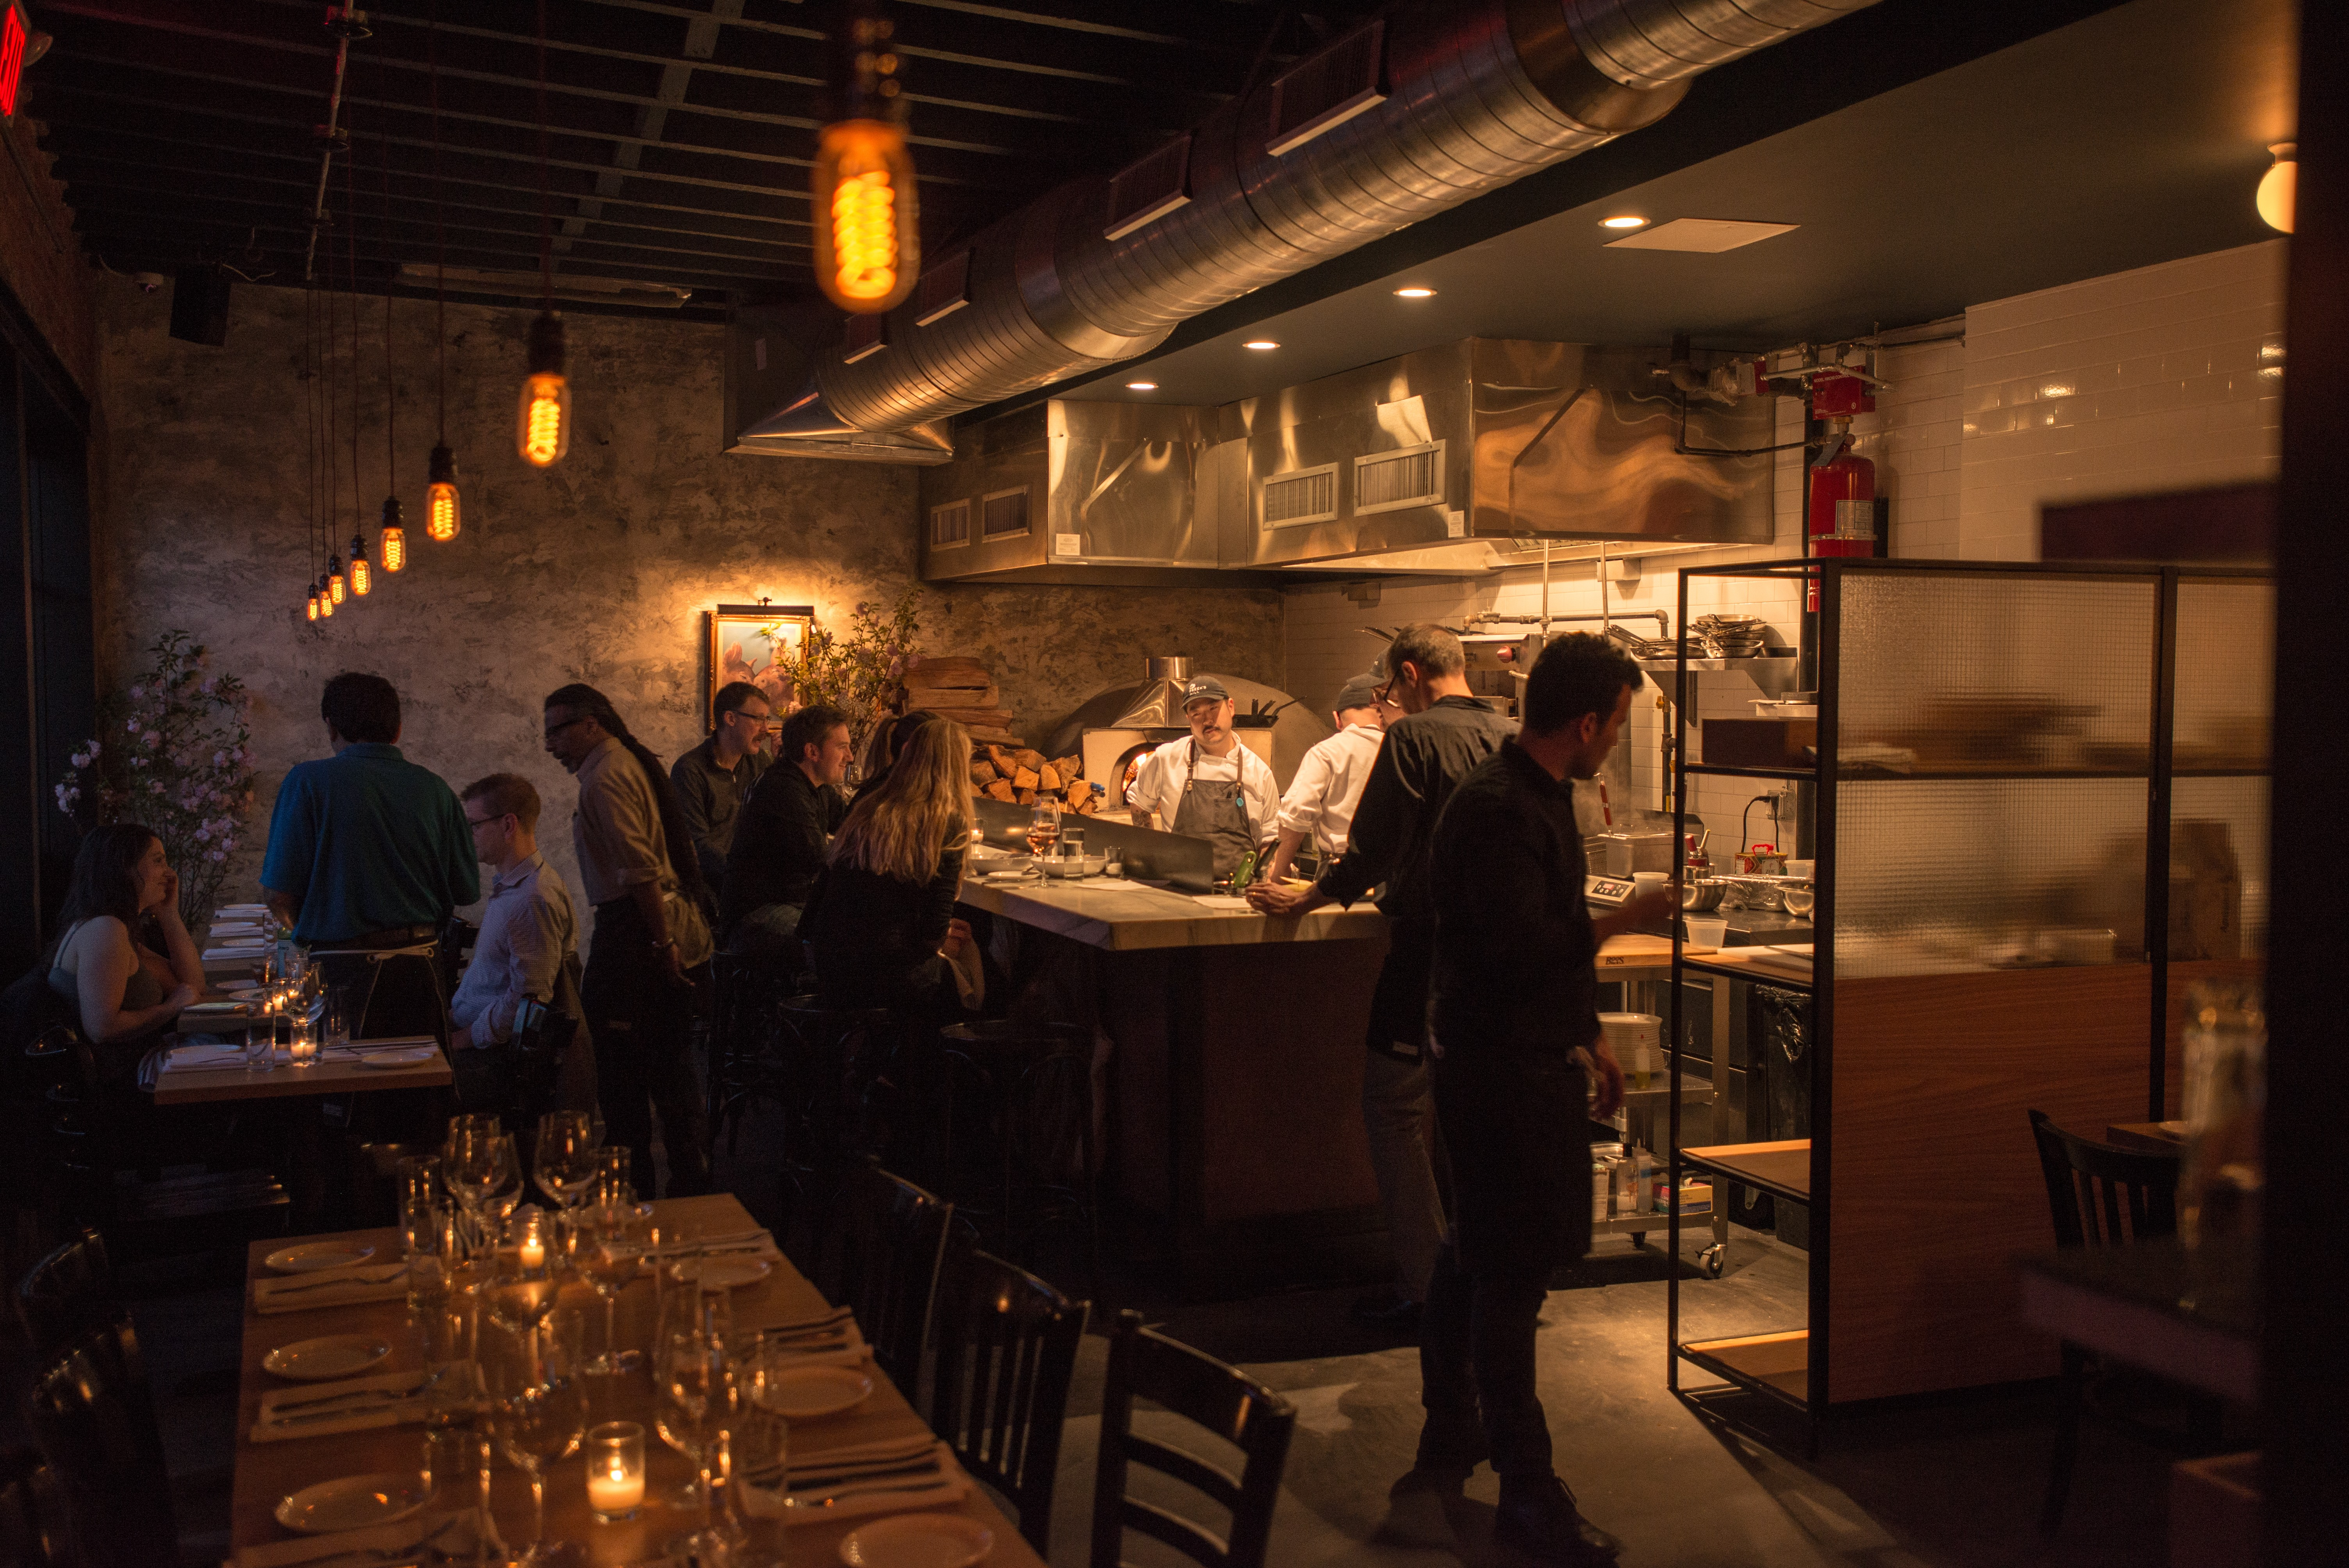 The dark, warm interior of Freek's Mill, with a wood-fire oven burning in the back